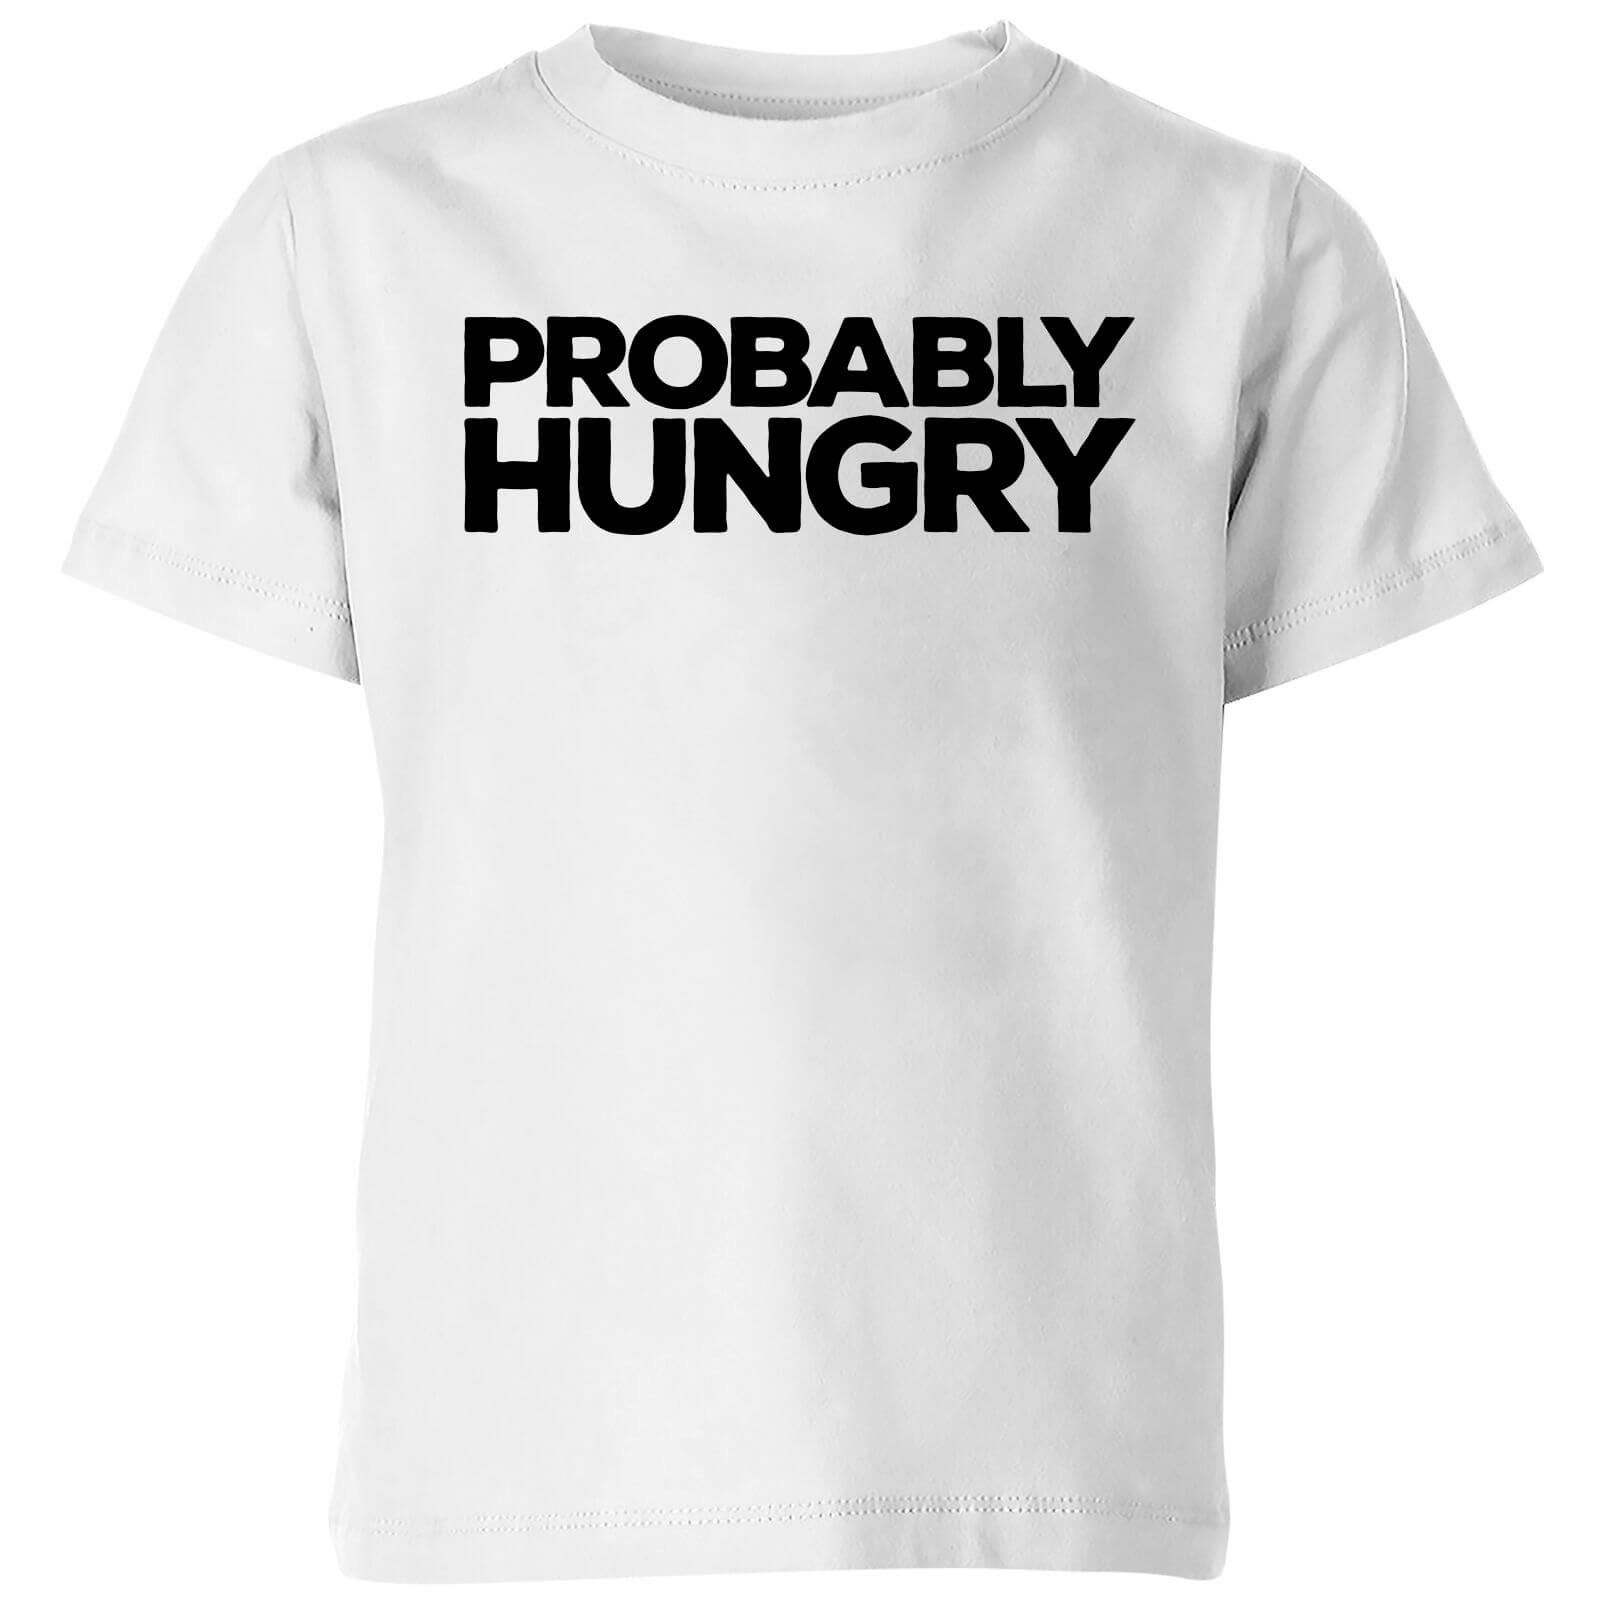 Probably Hungry Kids T-Shirt - White